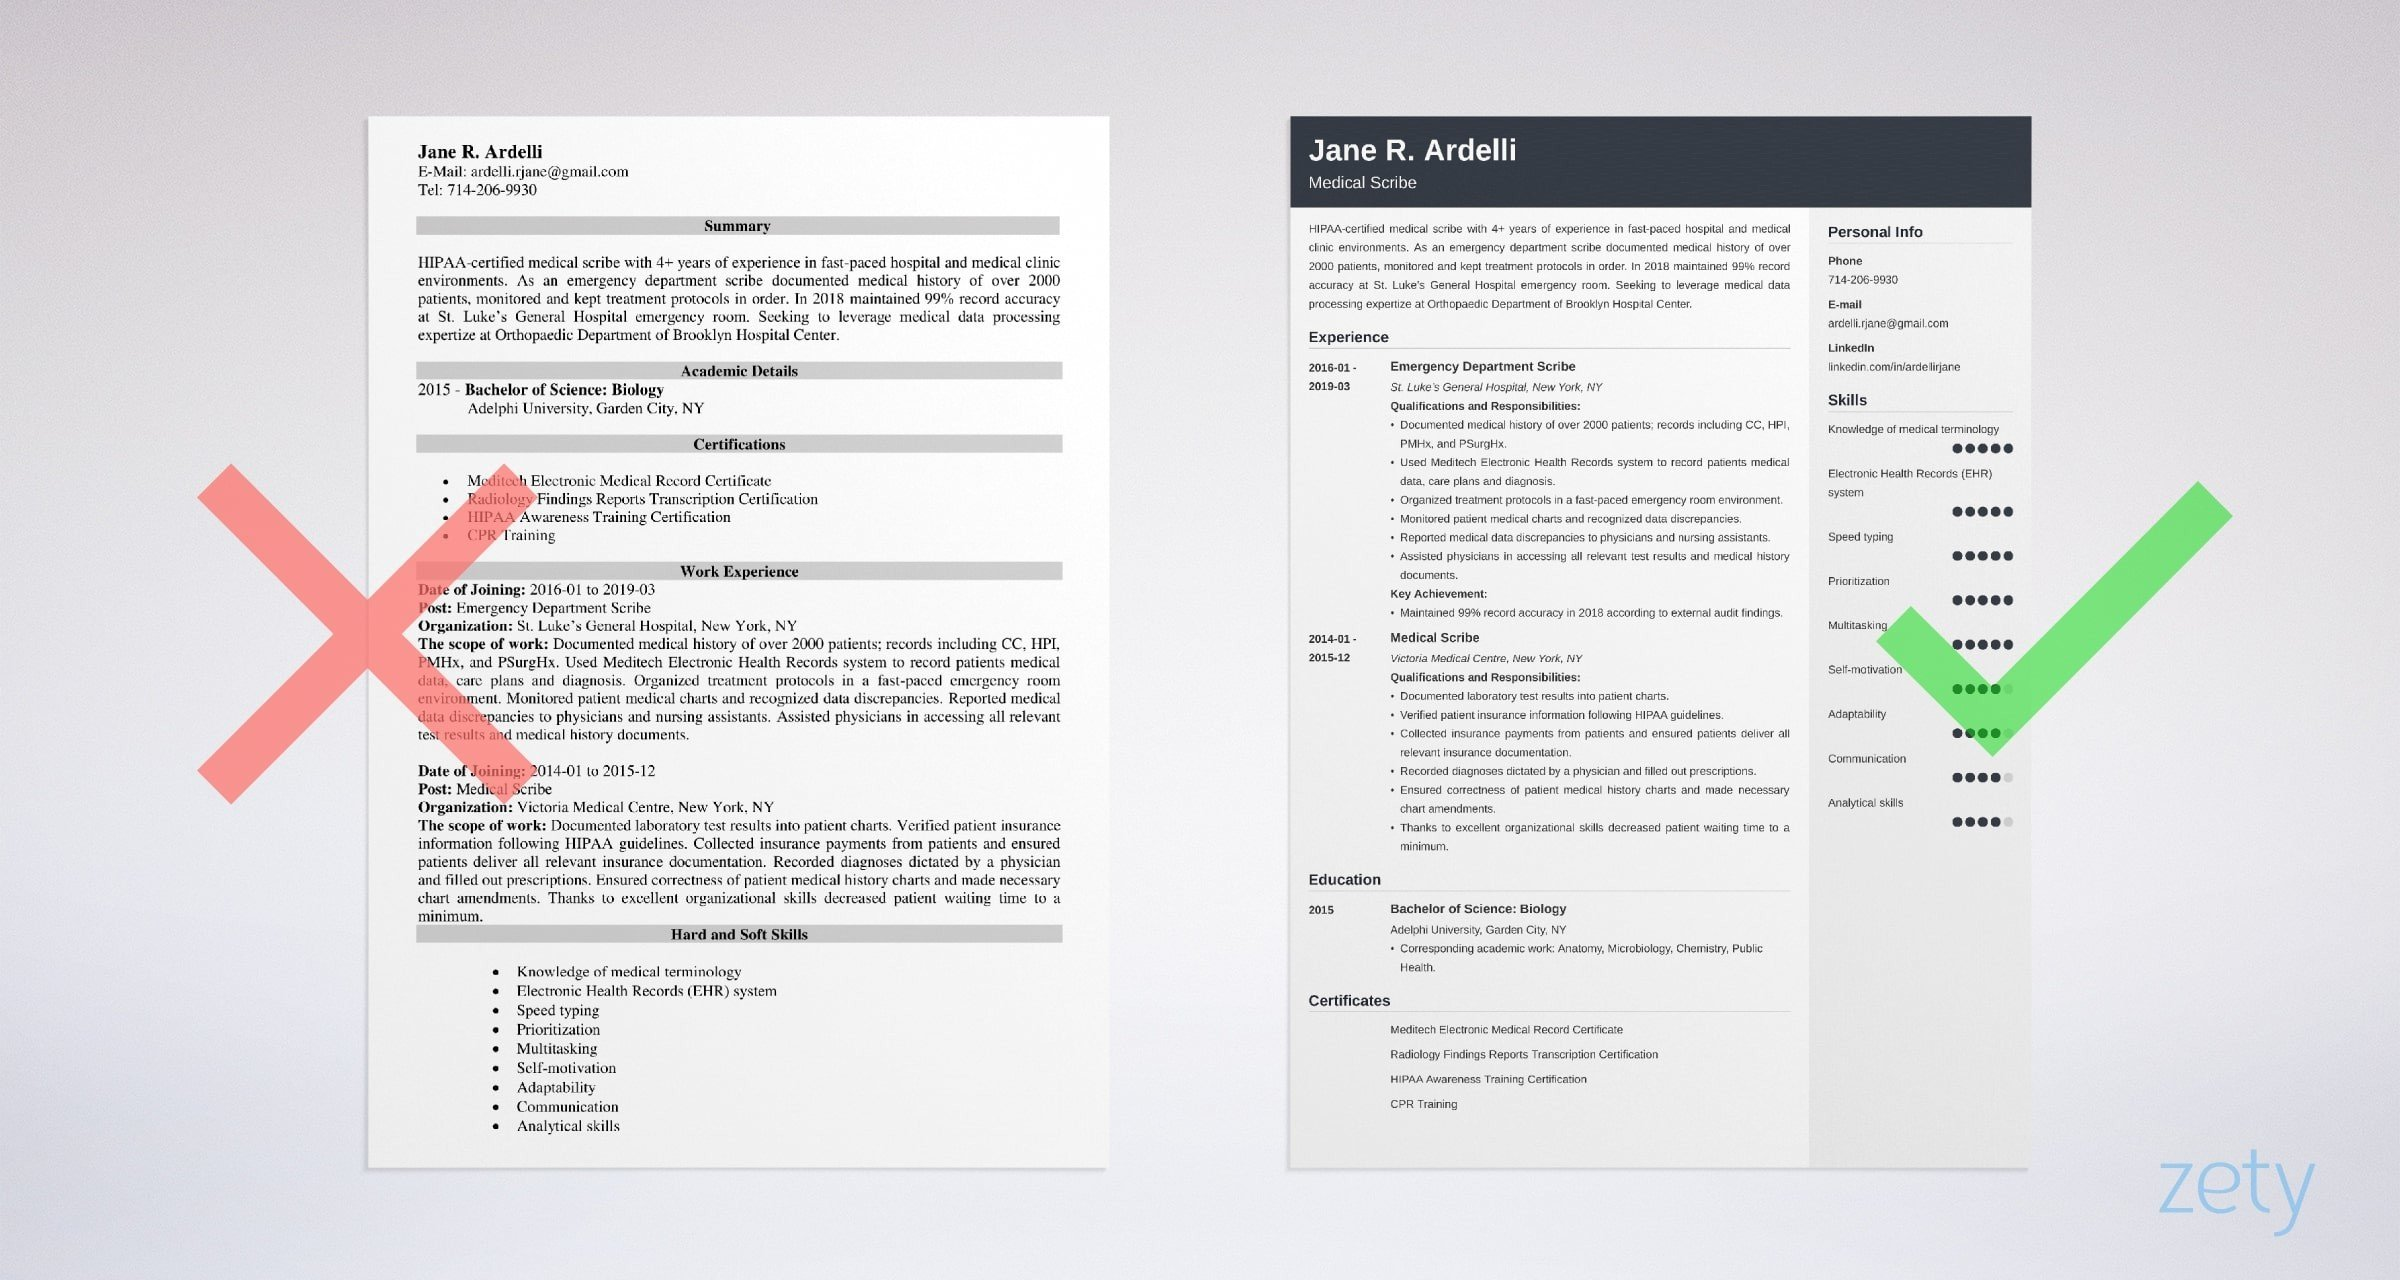 Medical Scribe Resume Sample & Writing Guide [20+ Tips]